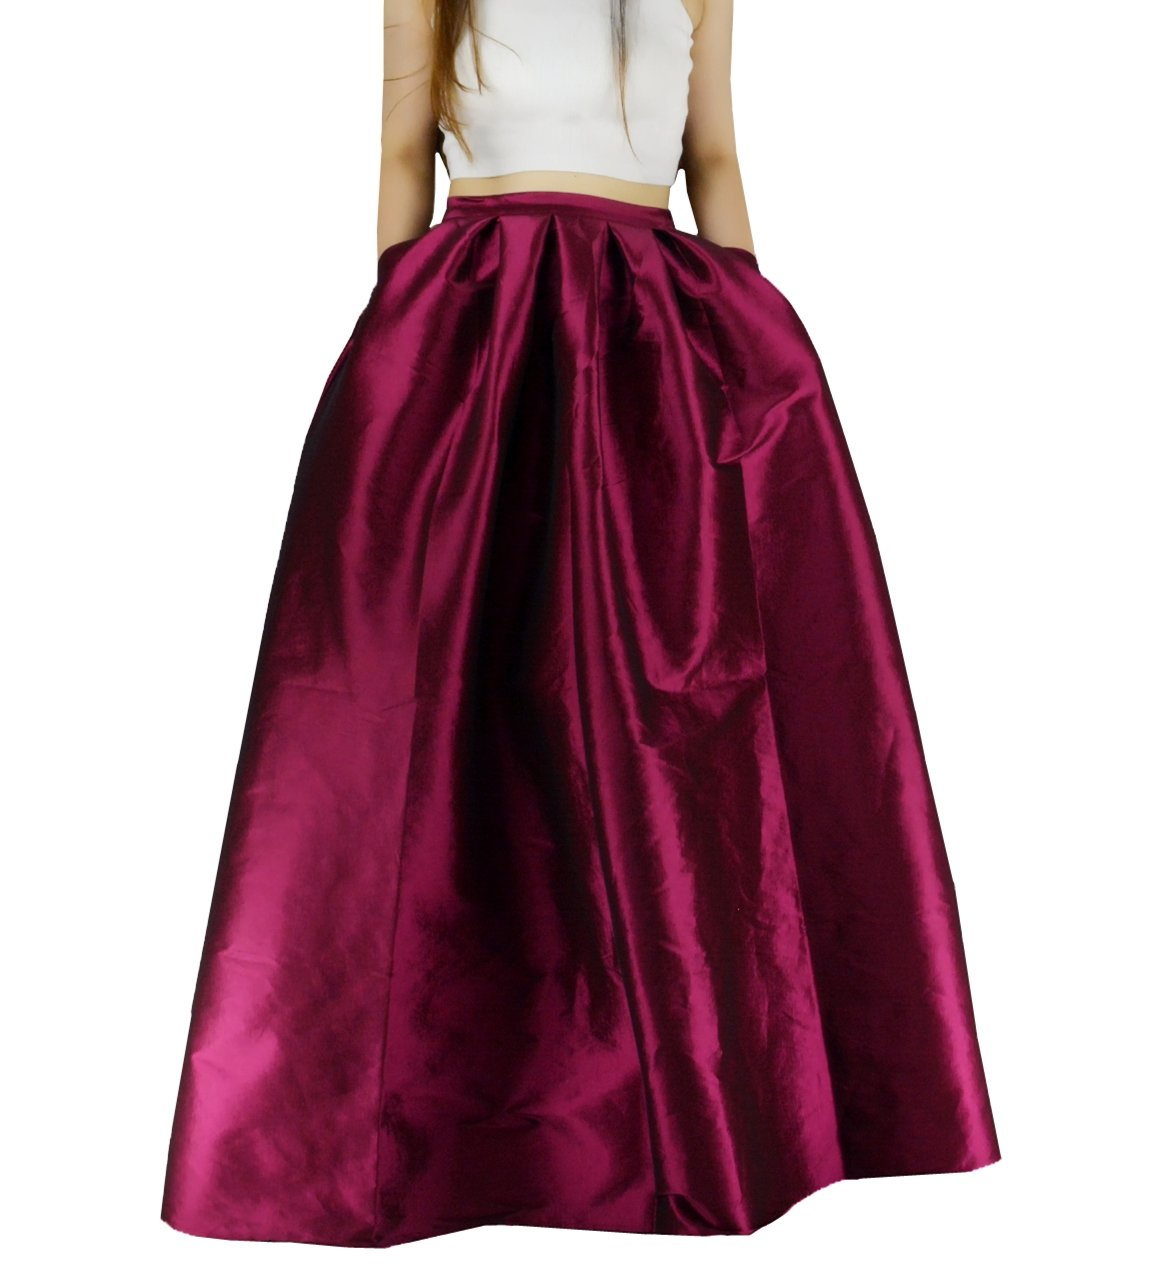 YSJ Women's High Waist A-Line Pleated Maxi Skirts Party Swing Skirt with Pockets